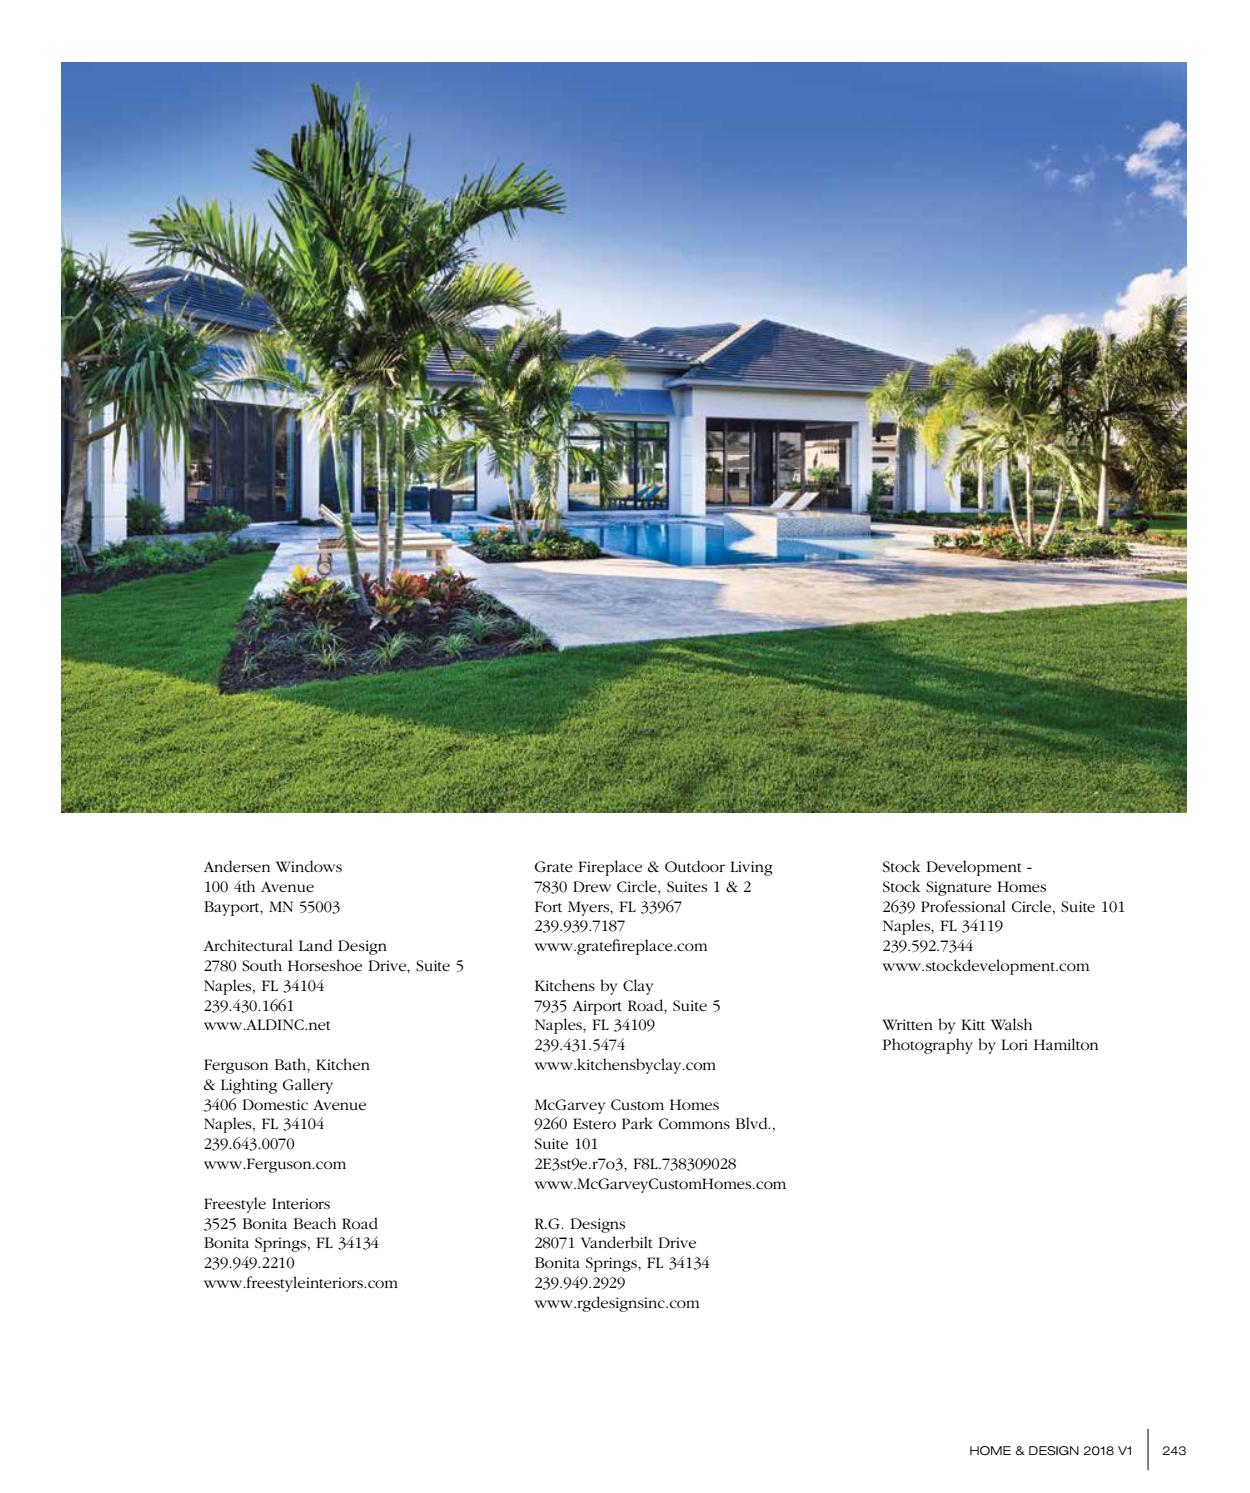 Home Design Magazine Southwest Florida Edition 2018 By